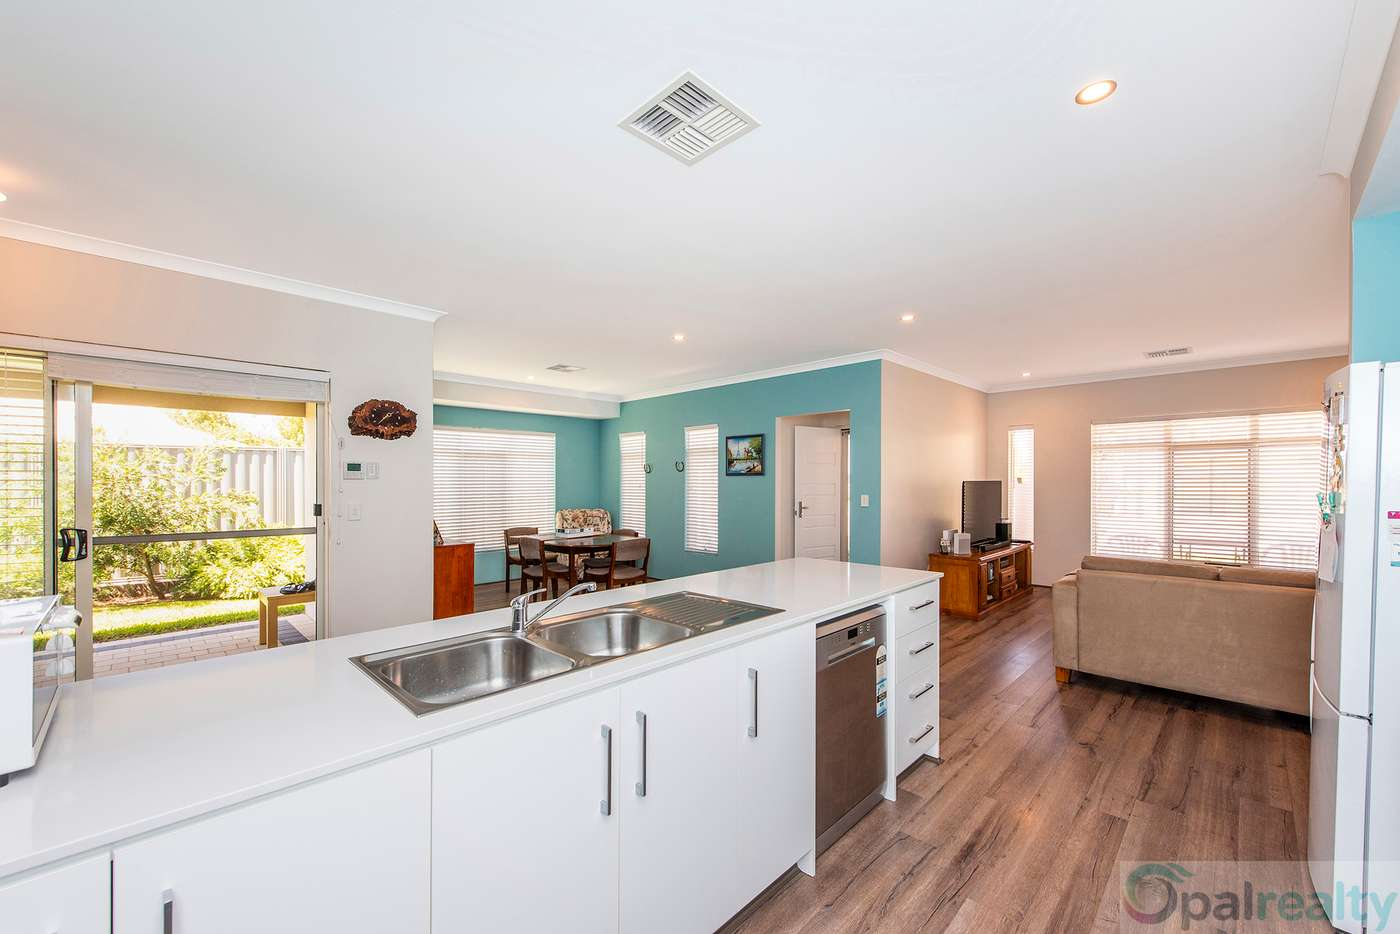 Sixth view of Homely house listing, 158 Inlet Boulevard, South Yunderup WA 6208